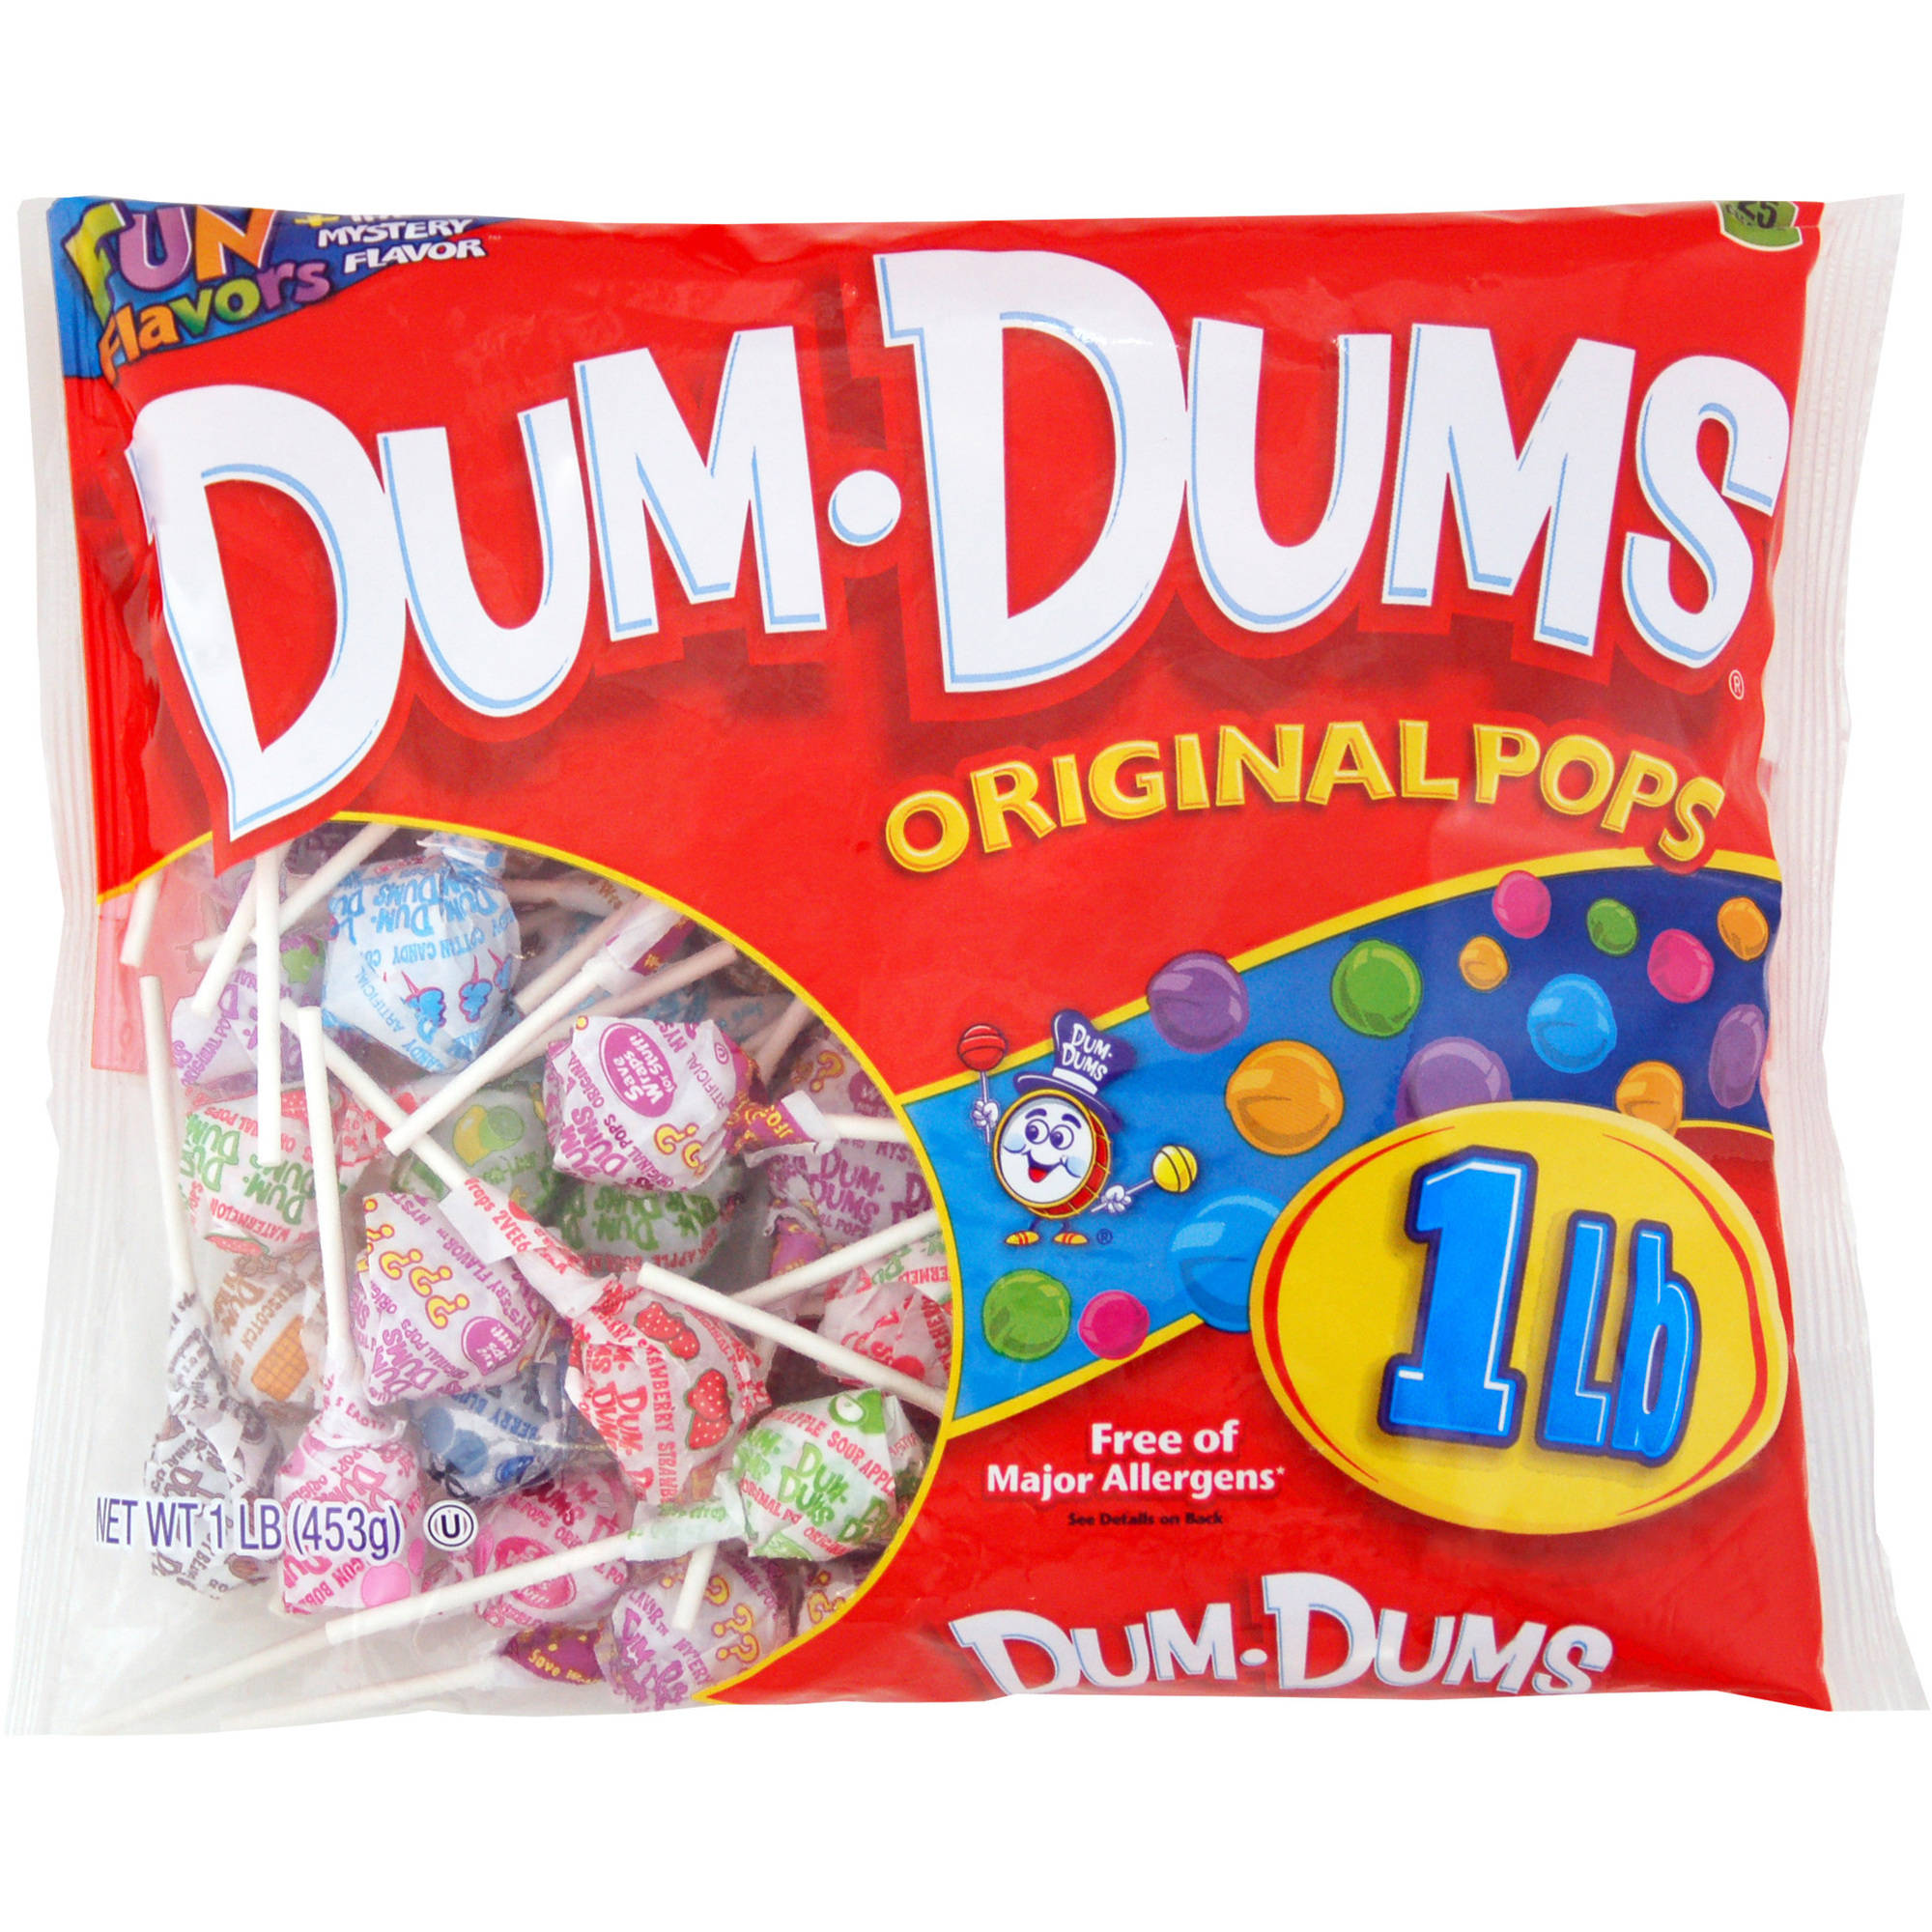 Dum Dum Pops, 1 lb bag